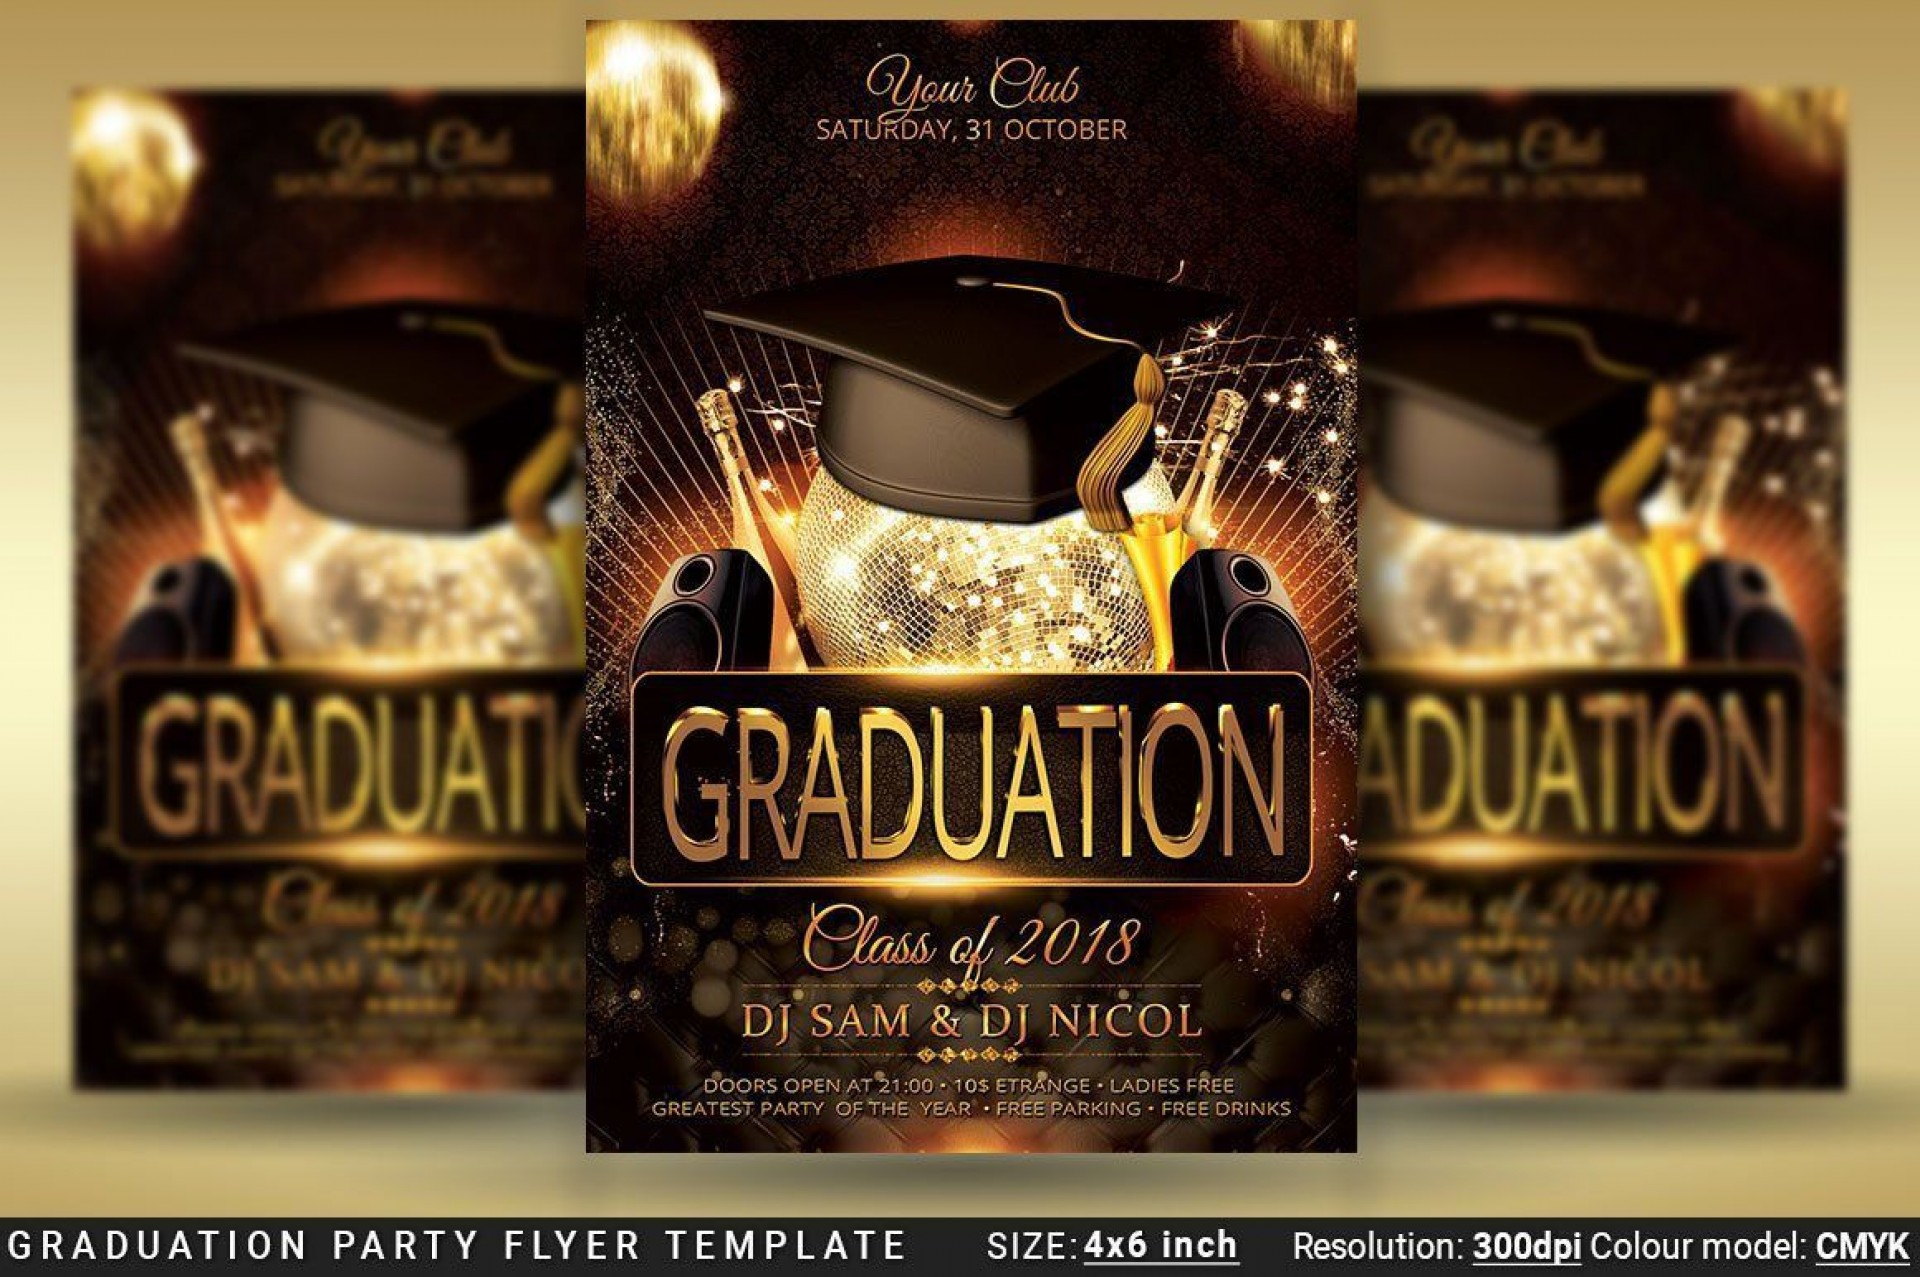 004 Outstanding Graduation Party Flyer Template Free Psd Photo 1920